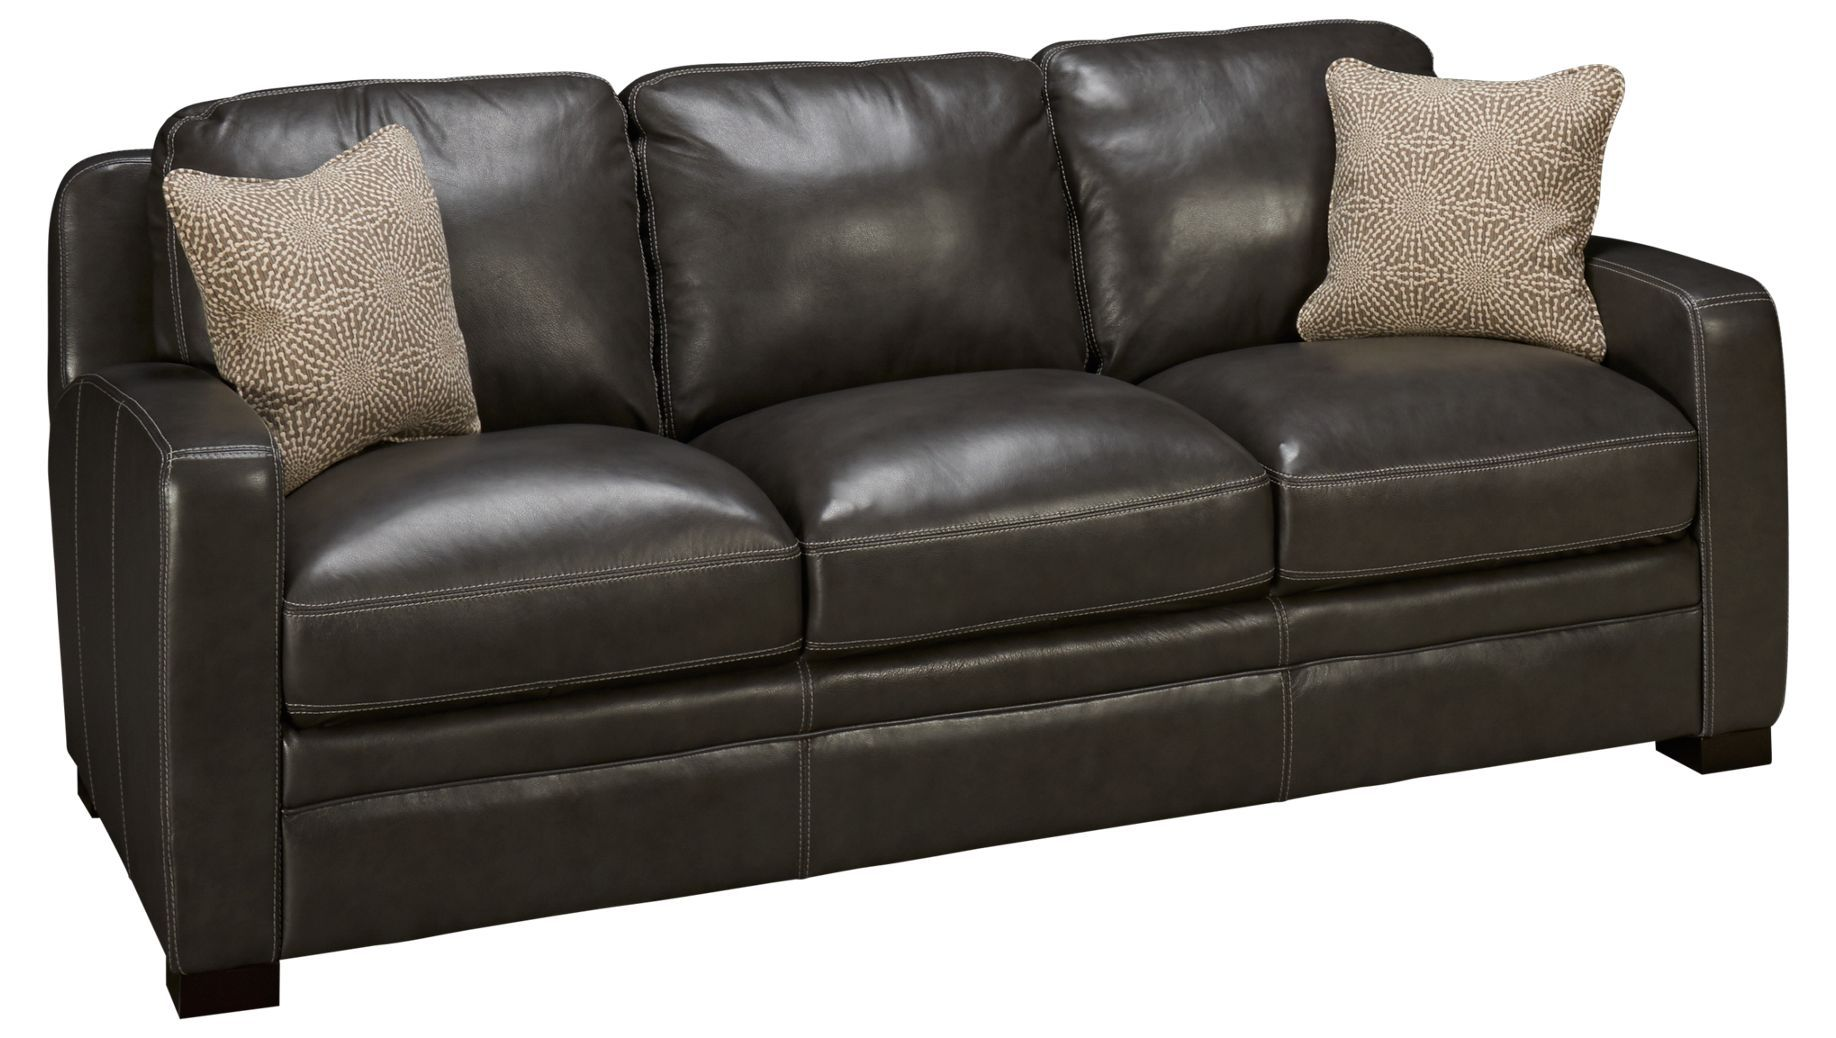 Simon Li El Paso Leather Sofa In 2020 Sofa Leather Sofa Furniture